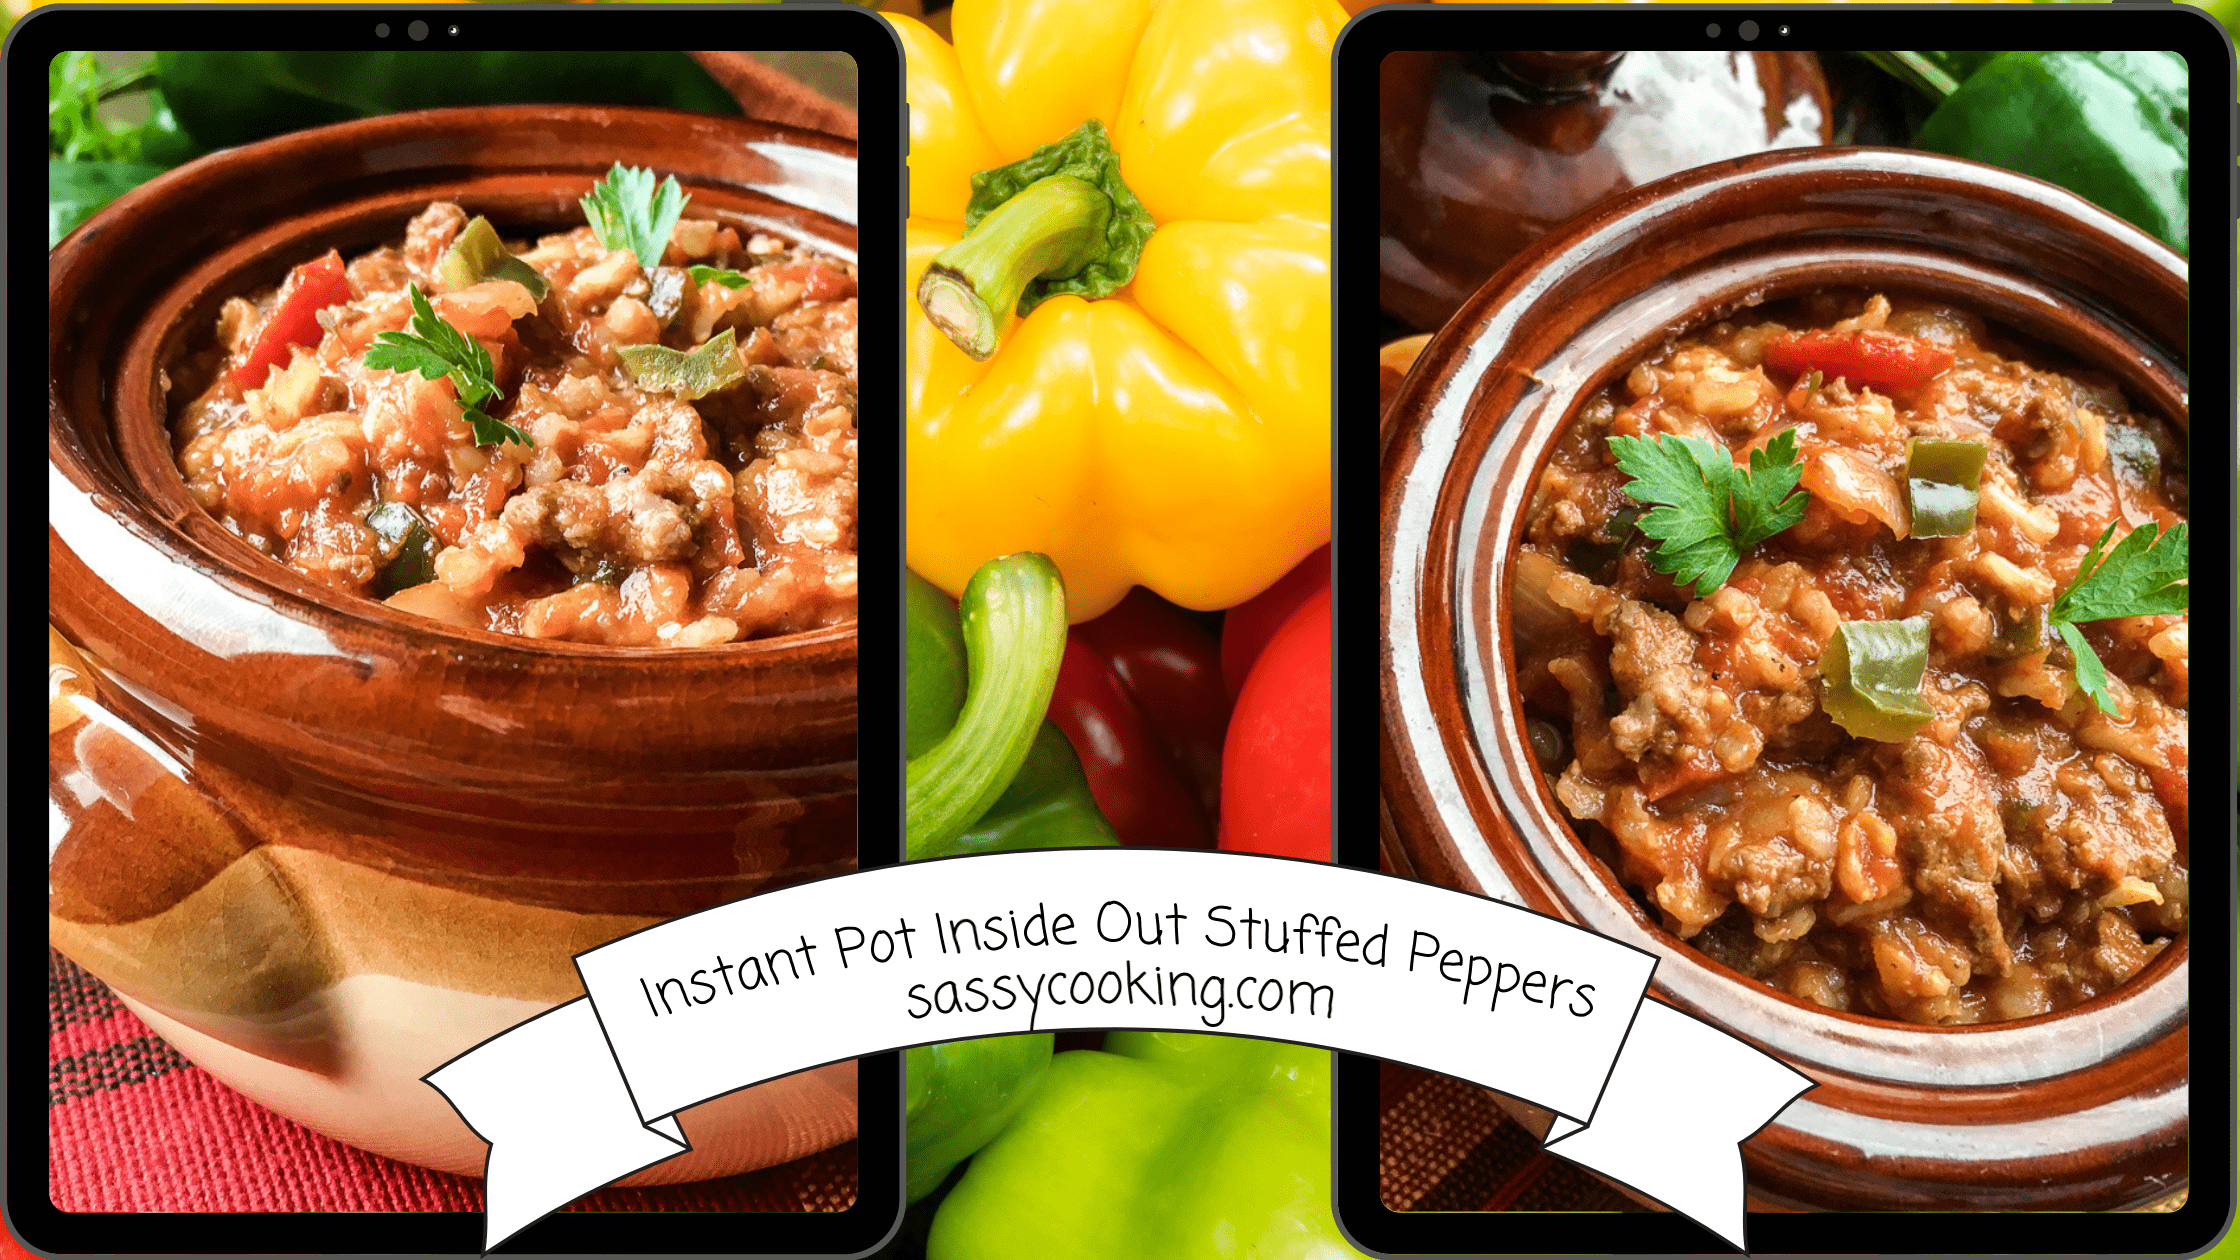 Instant Pot Inside Out Stuffed Peppers